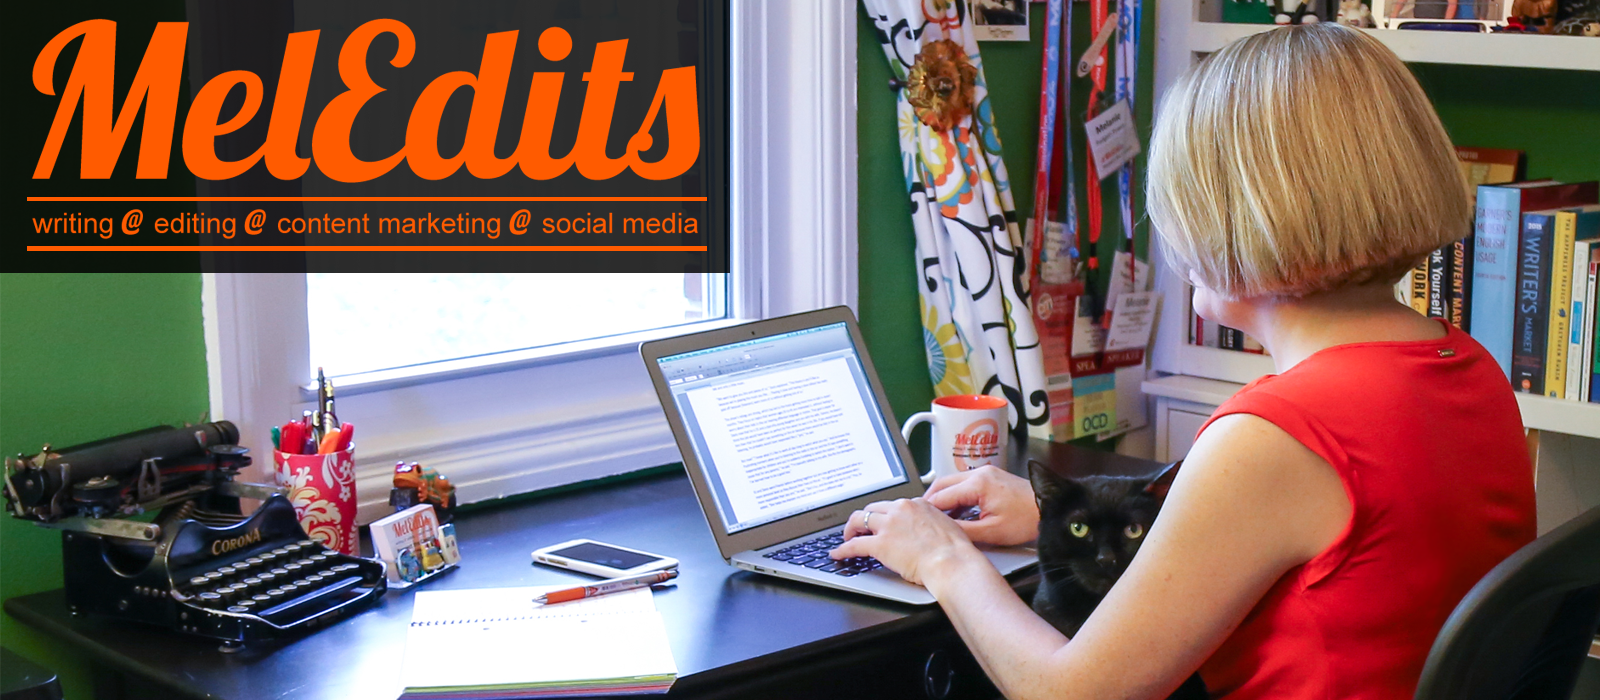 Welcome to MelEdits—writing, editing, content marketing, social media